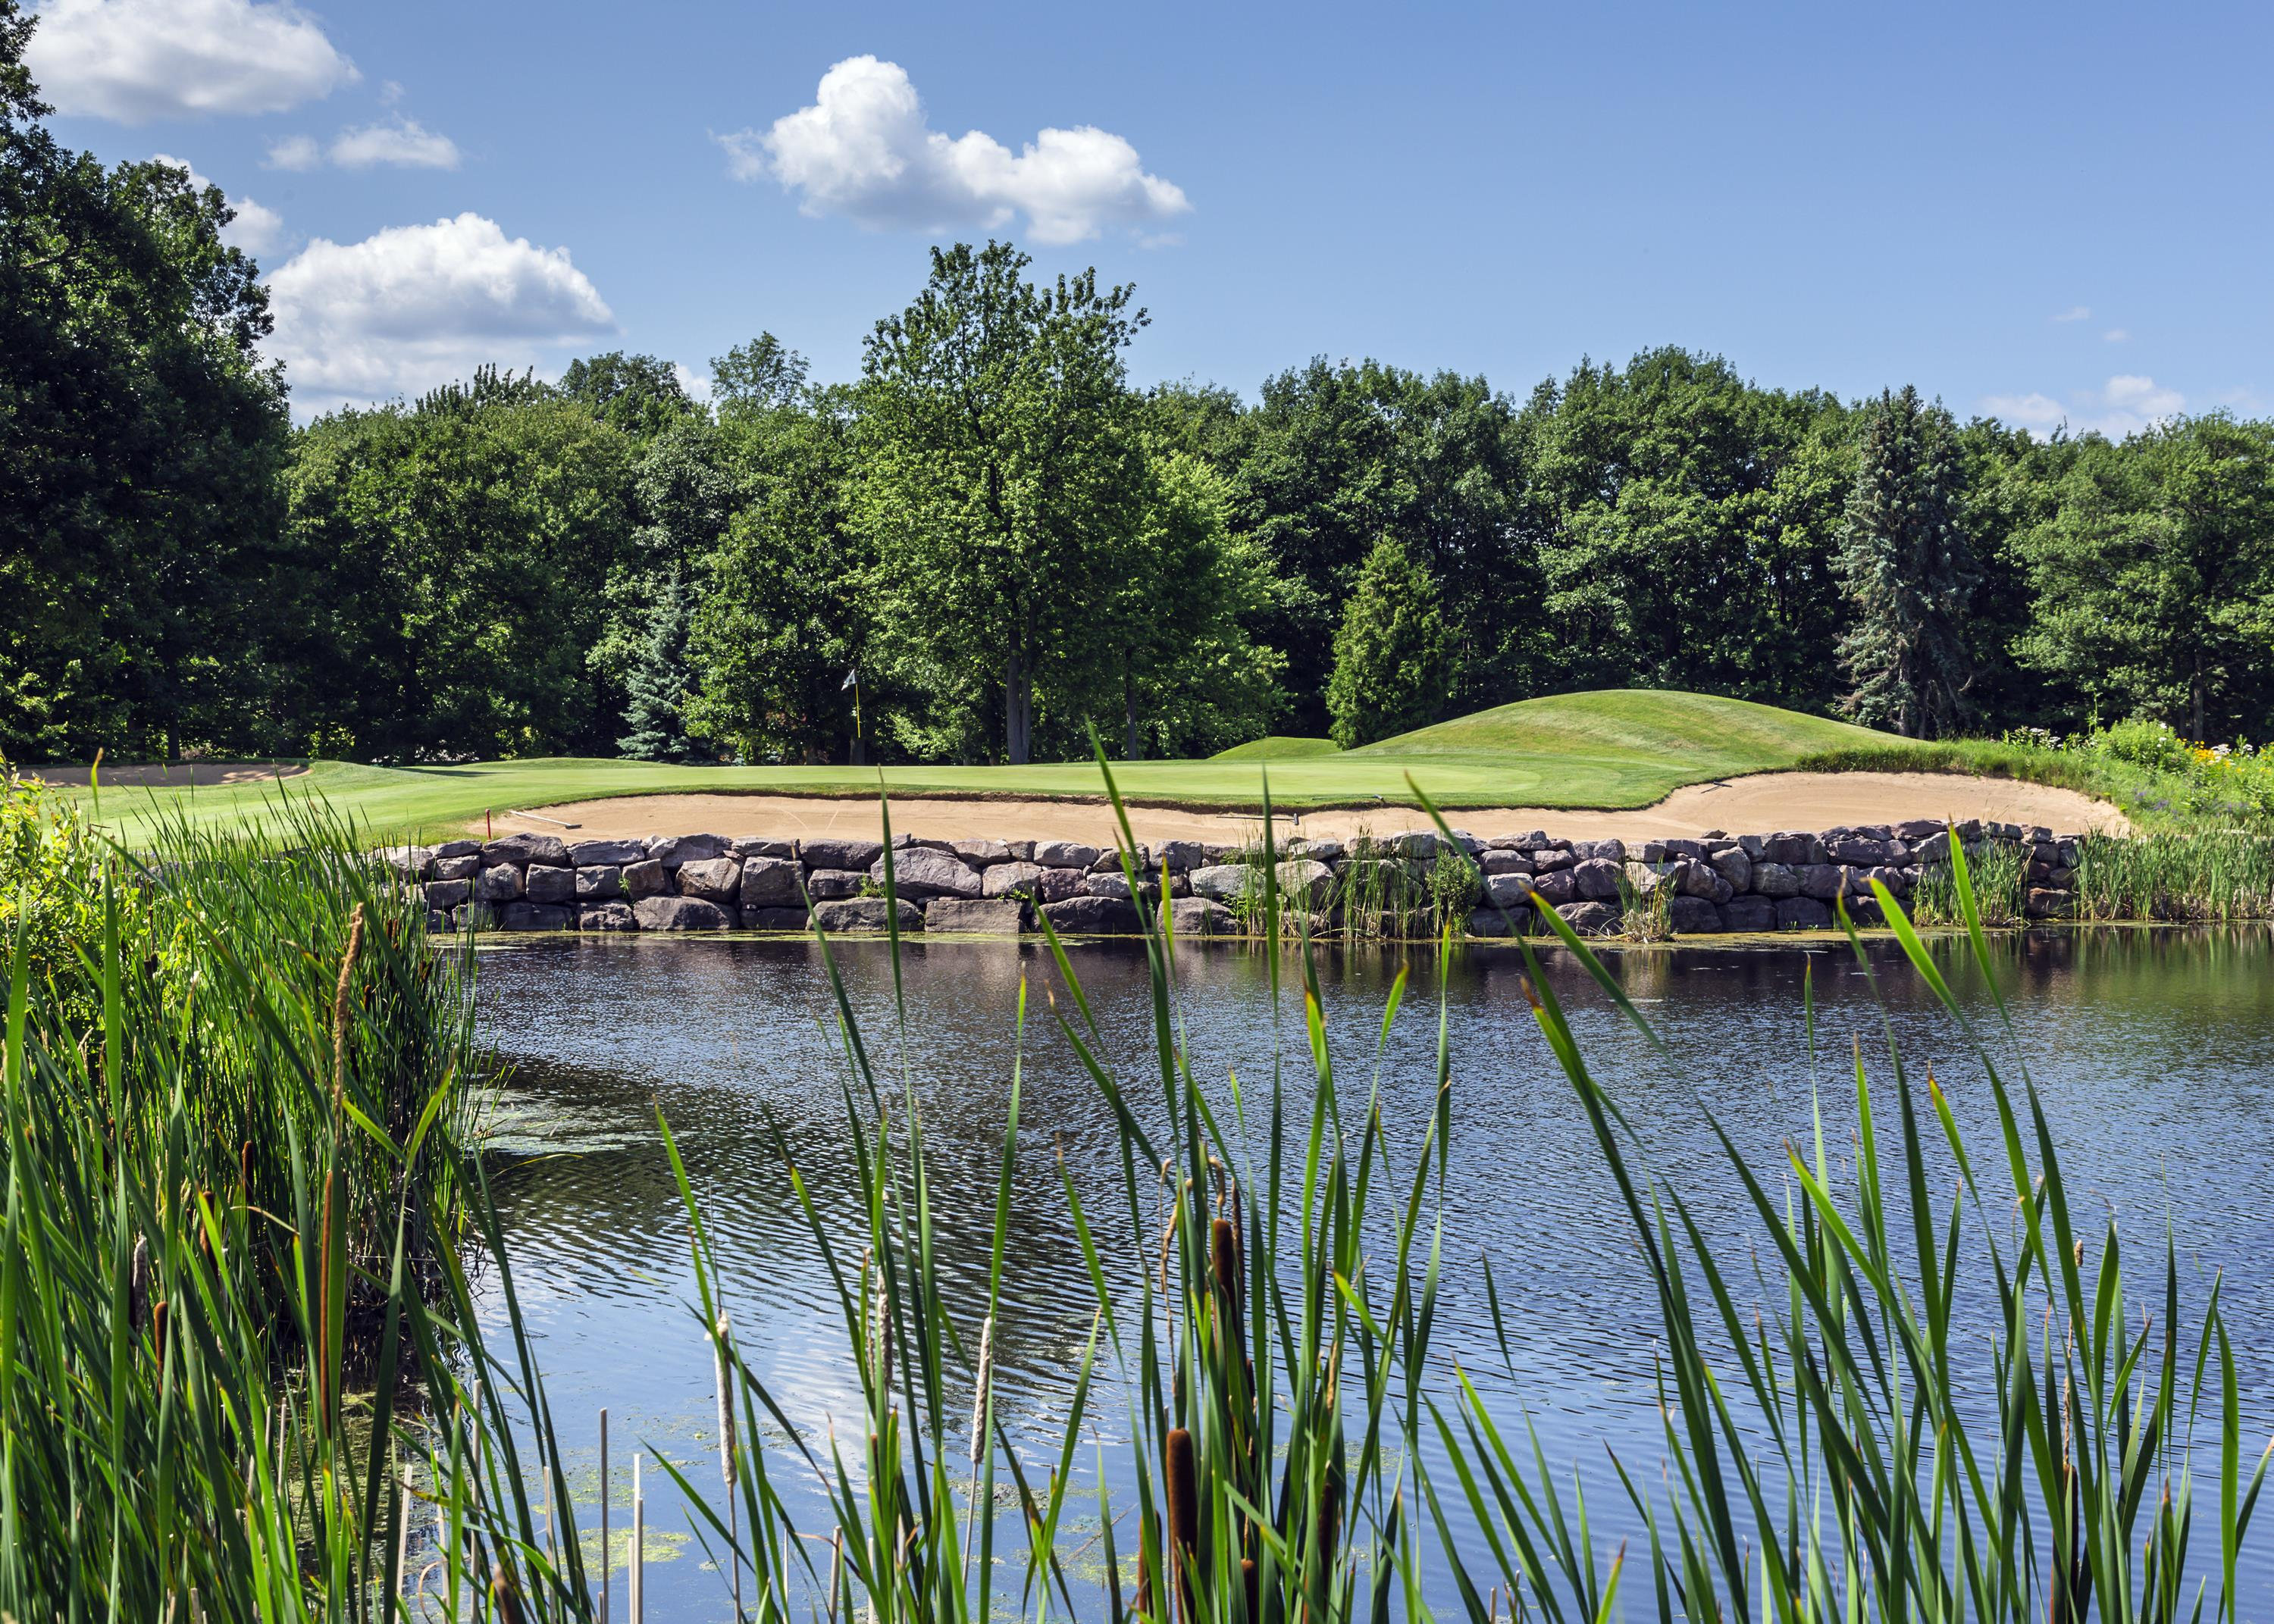 Summerlea-The Dorion Course